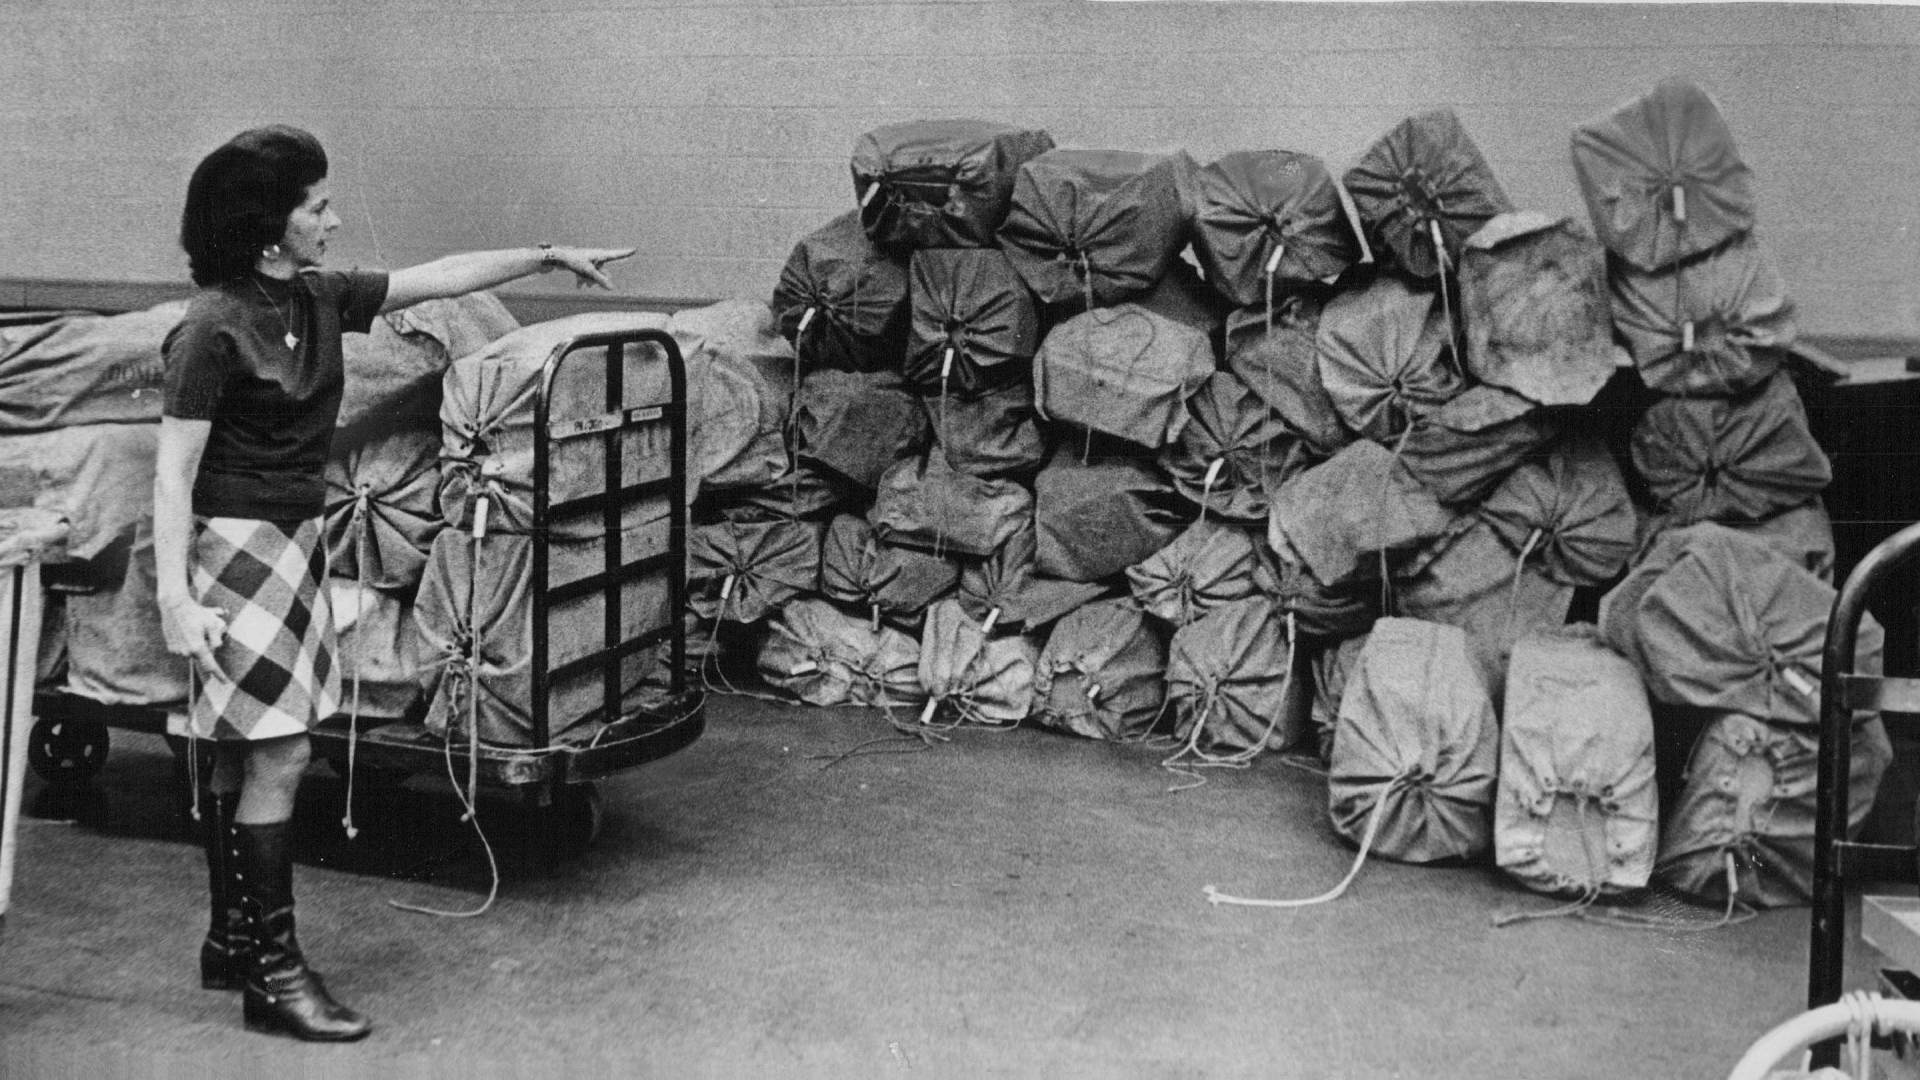 Martha Leslie, Secretary to Operations Director, points to 60 bags of parcel post stalled in Denver due to the postal strike. (Credit: Dave Buresh/The Denver Post via Getty Images)